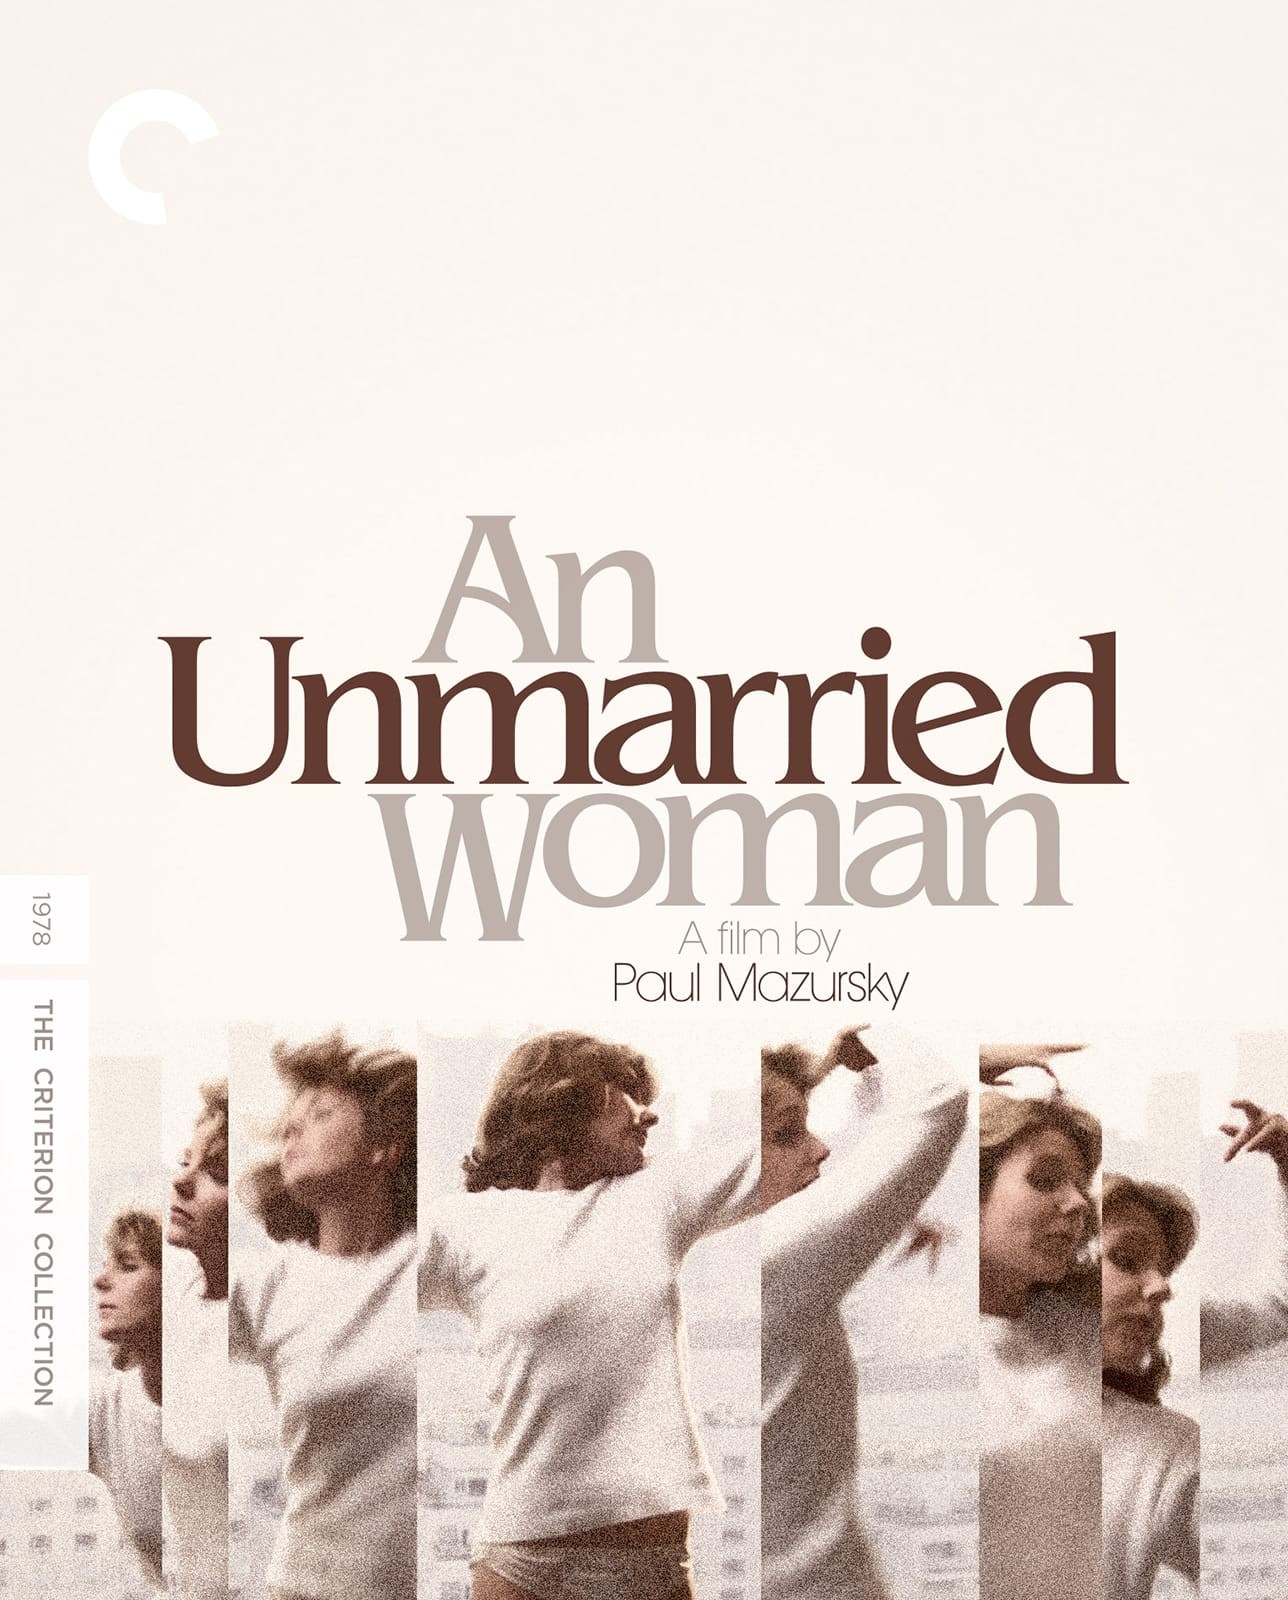 An Unmarried Woman (1978) | The Criterion Collection